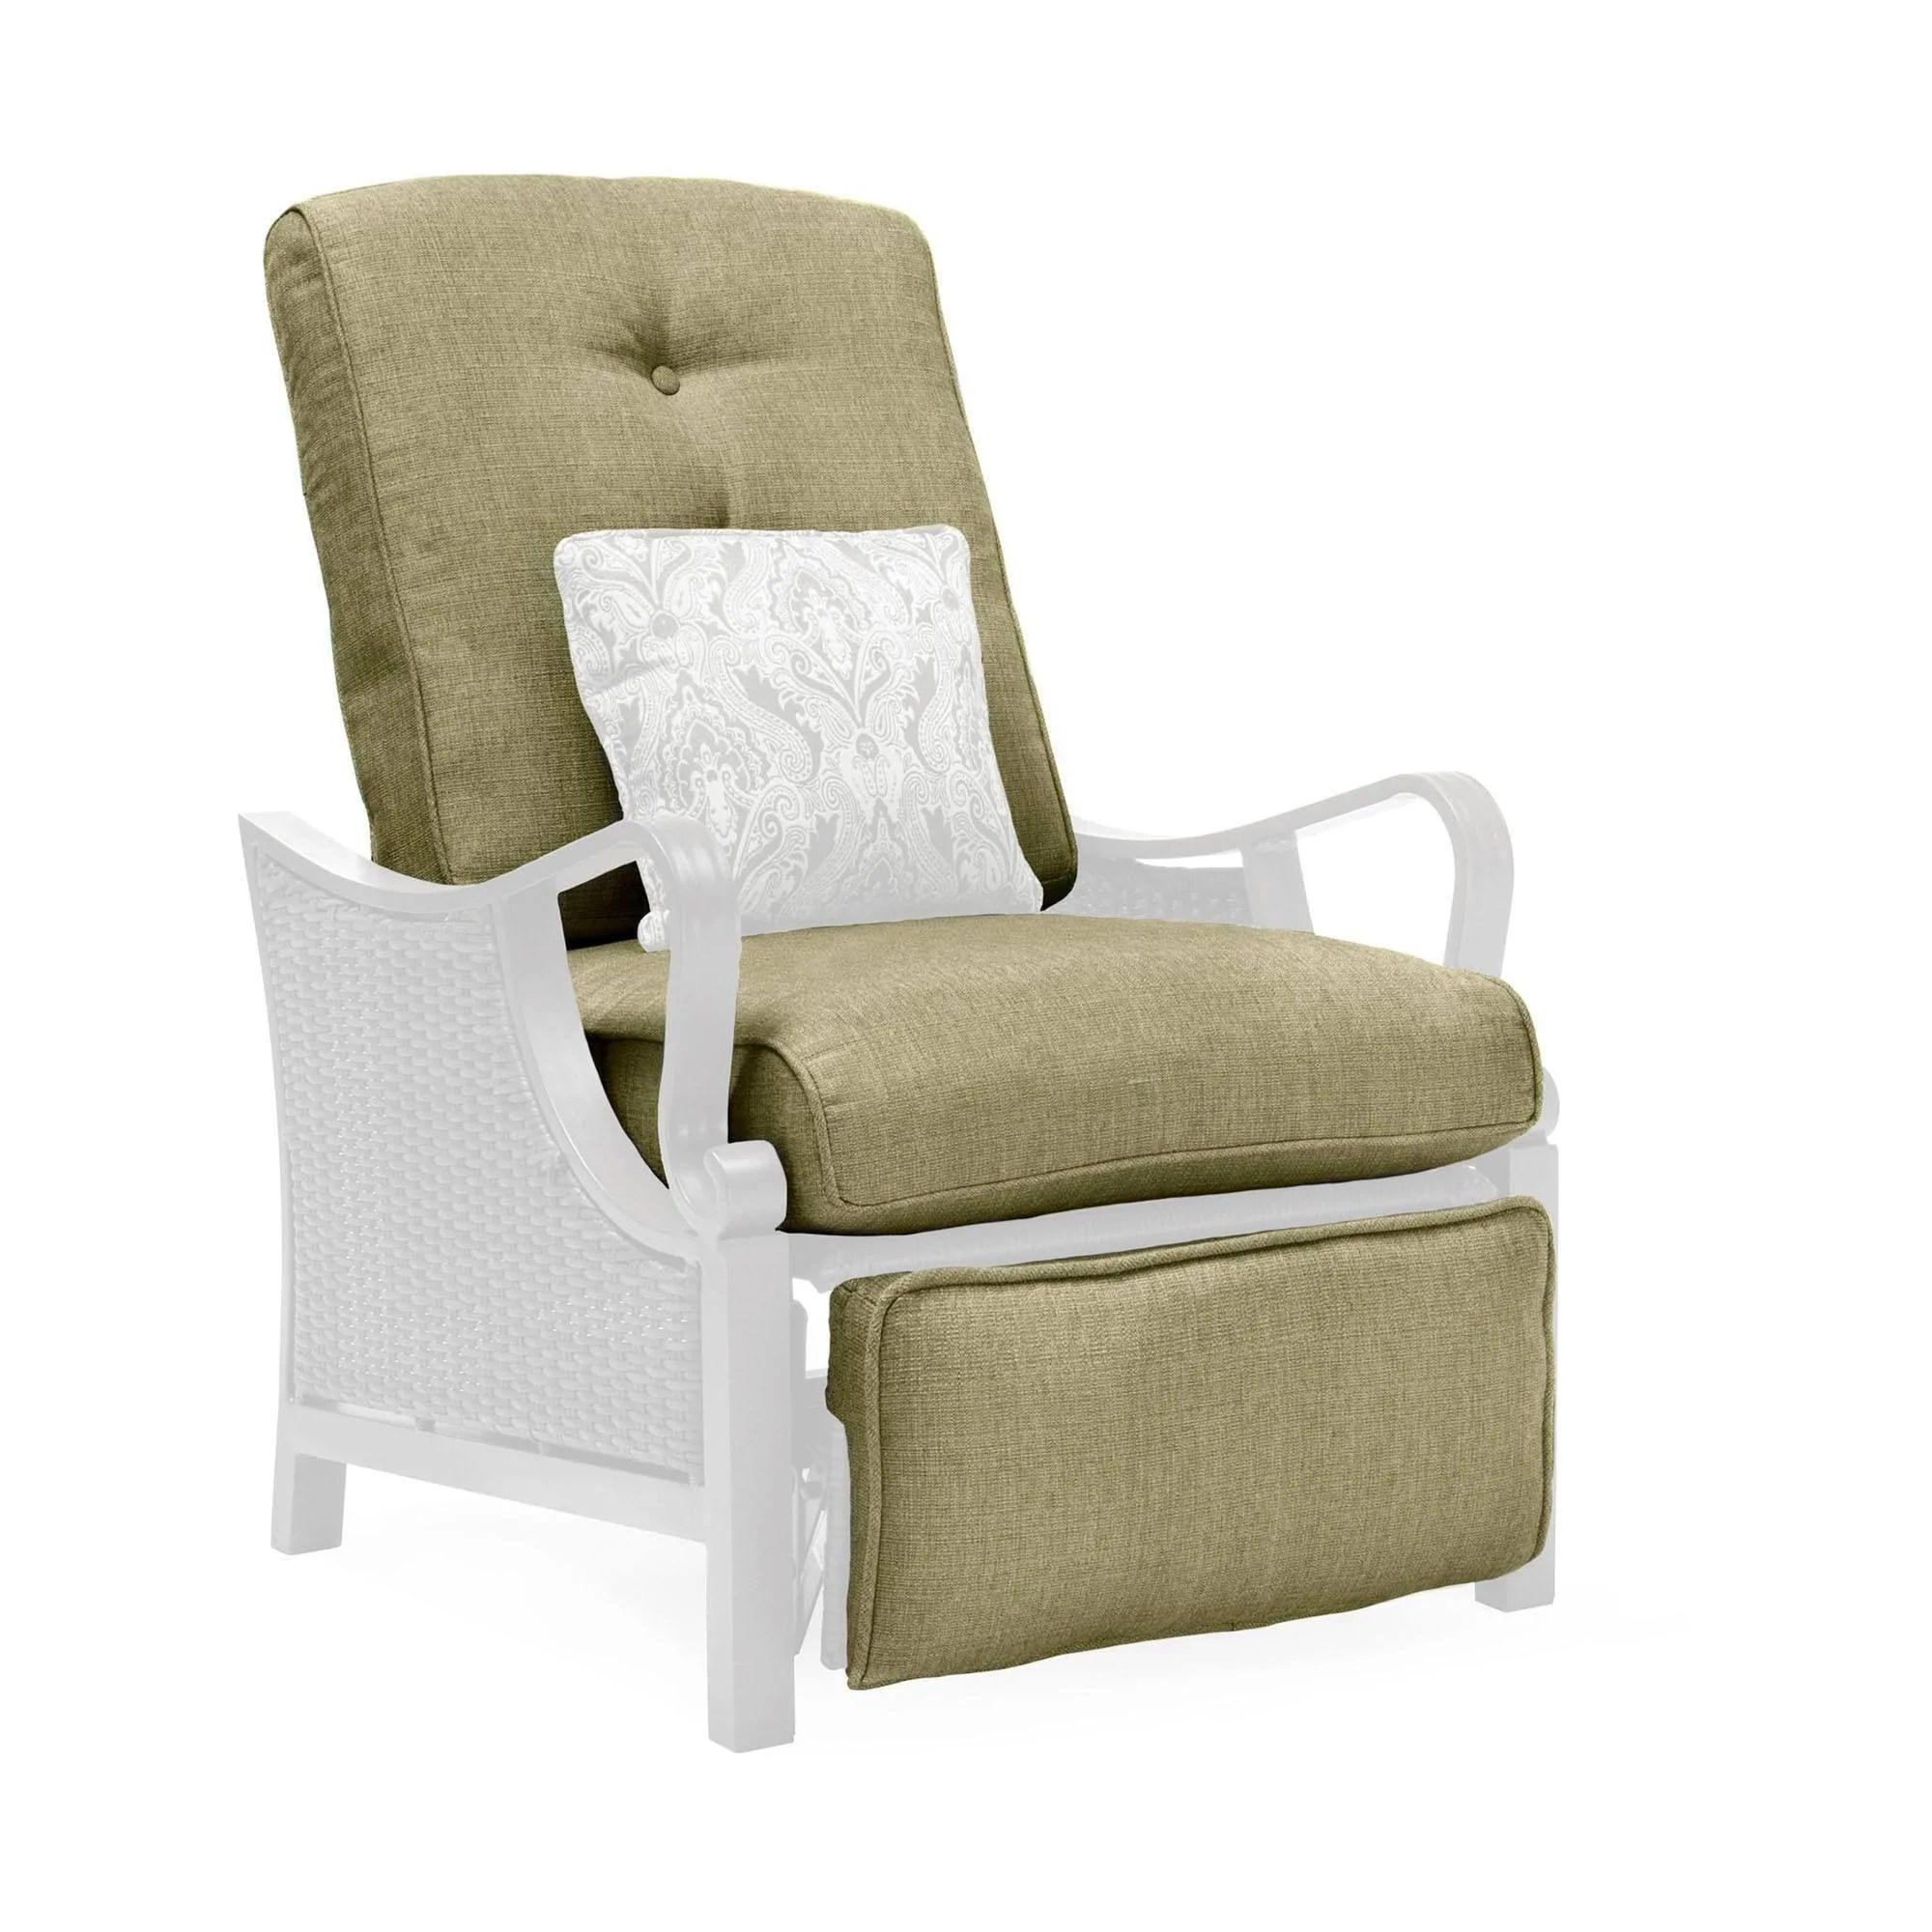 Outdoor Recliner Chair Peyton Outdoor Recliner Replacement Cushions La Z Boy